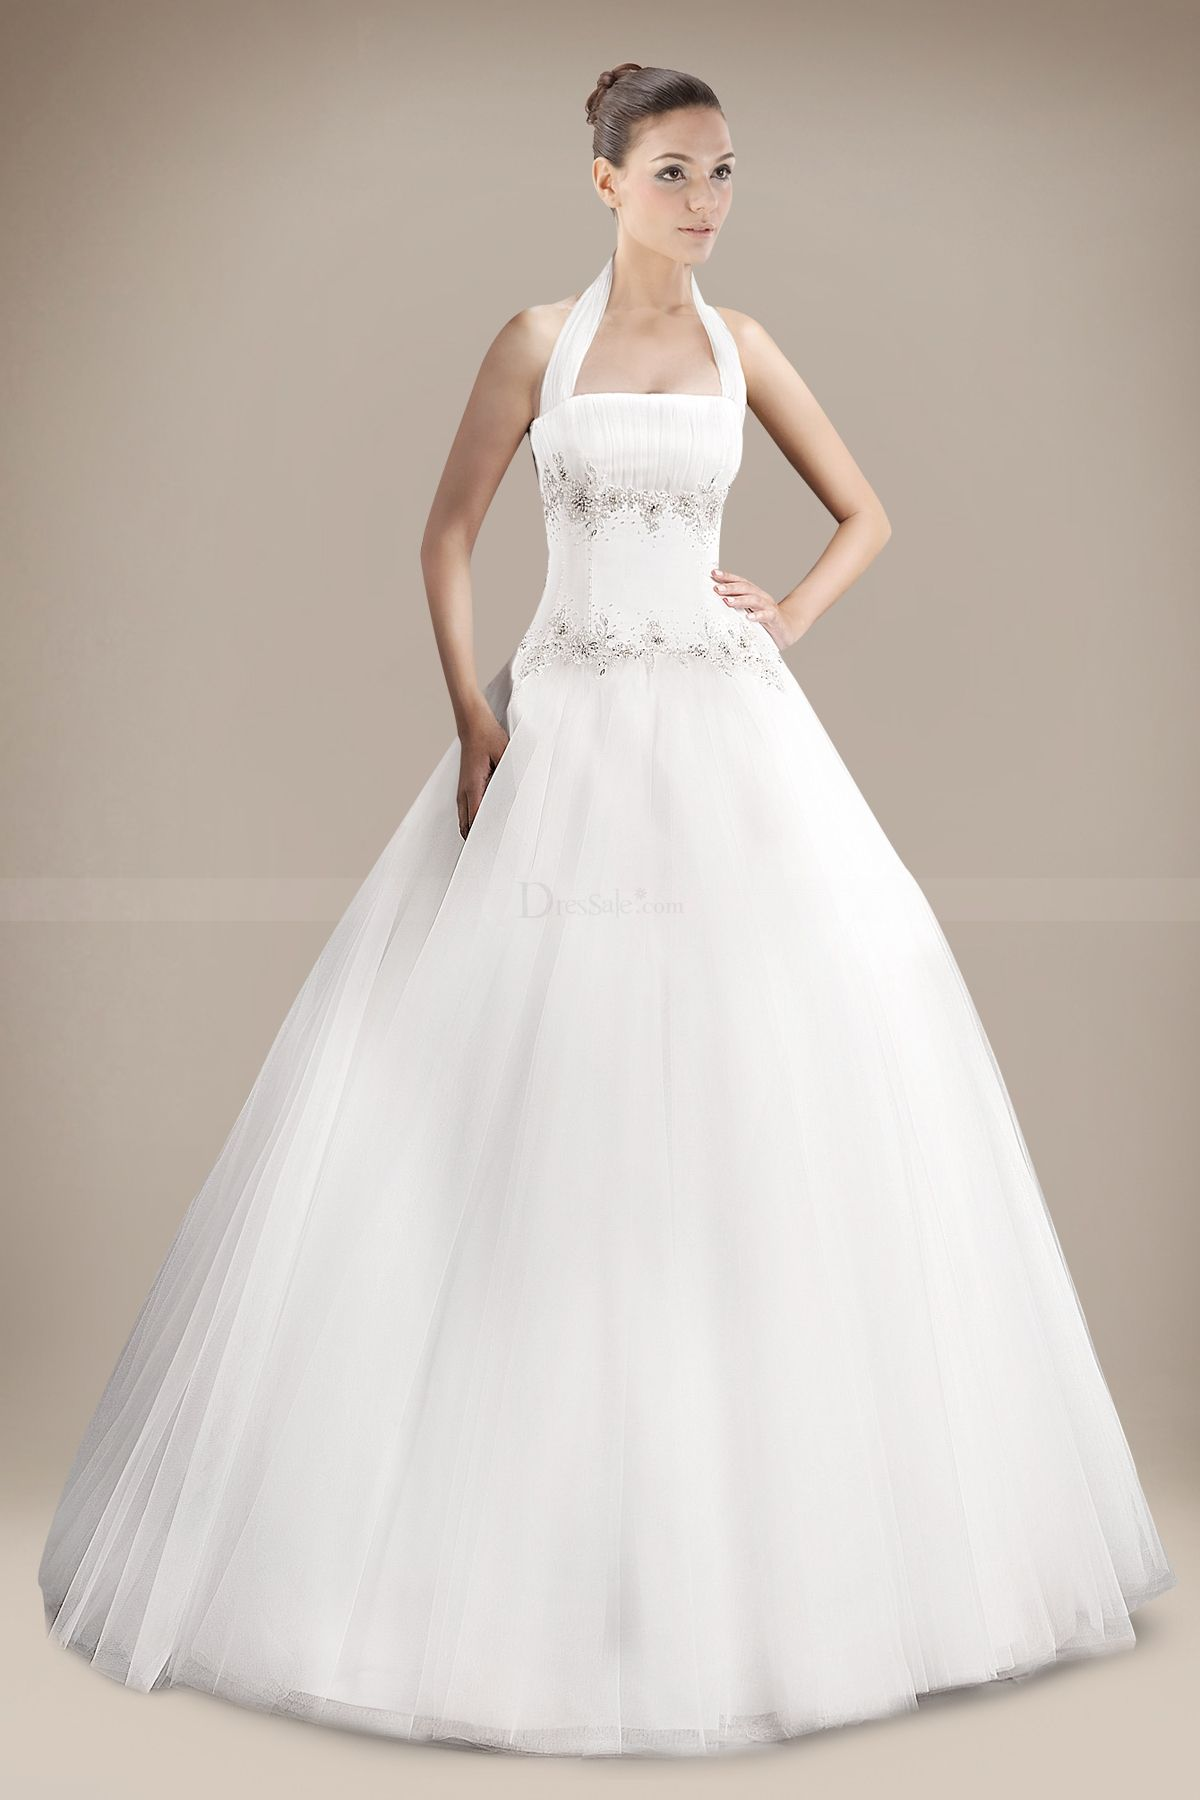 Fantasy ball gown necklines pinterest ball gowns gowns and